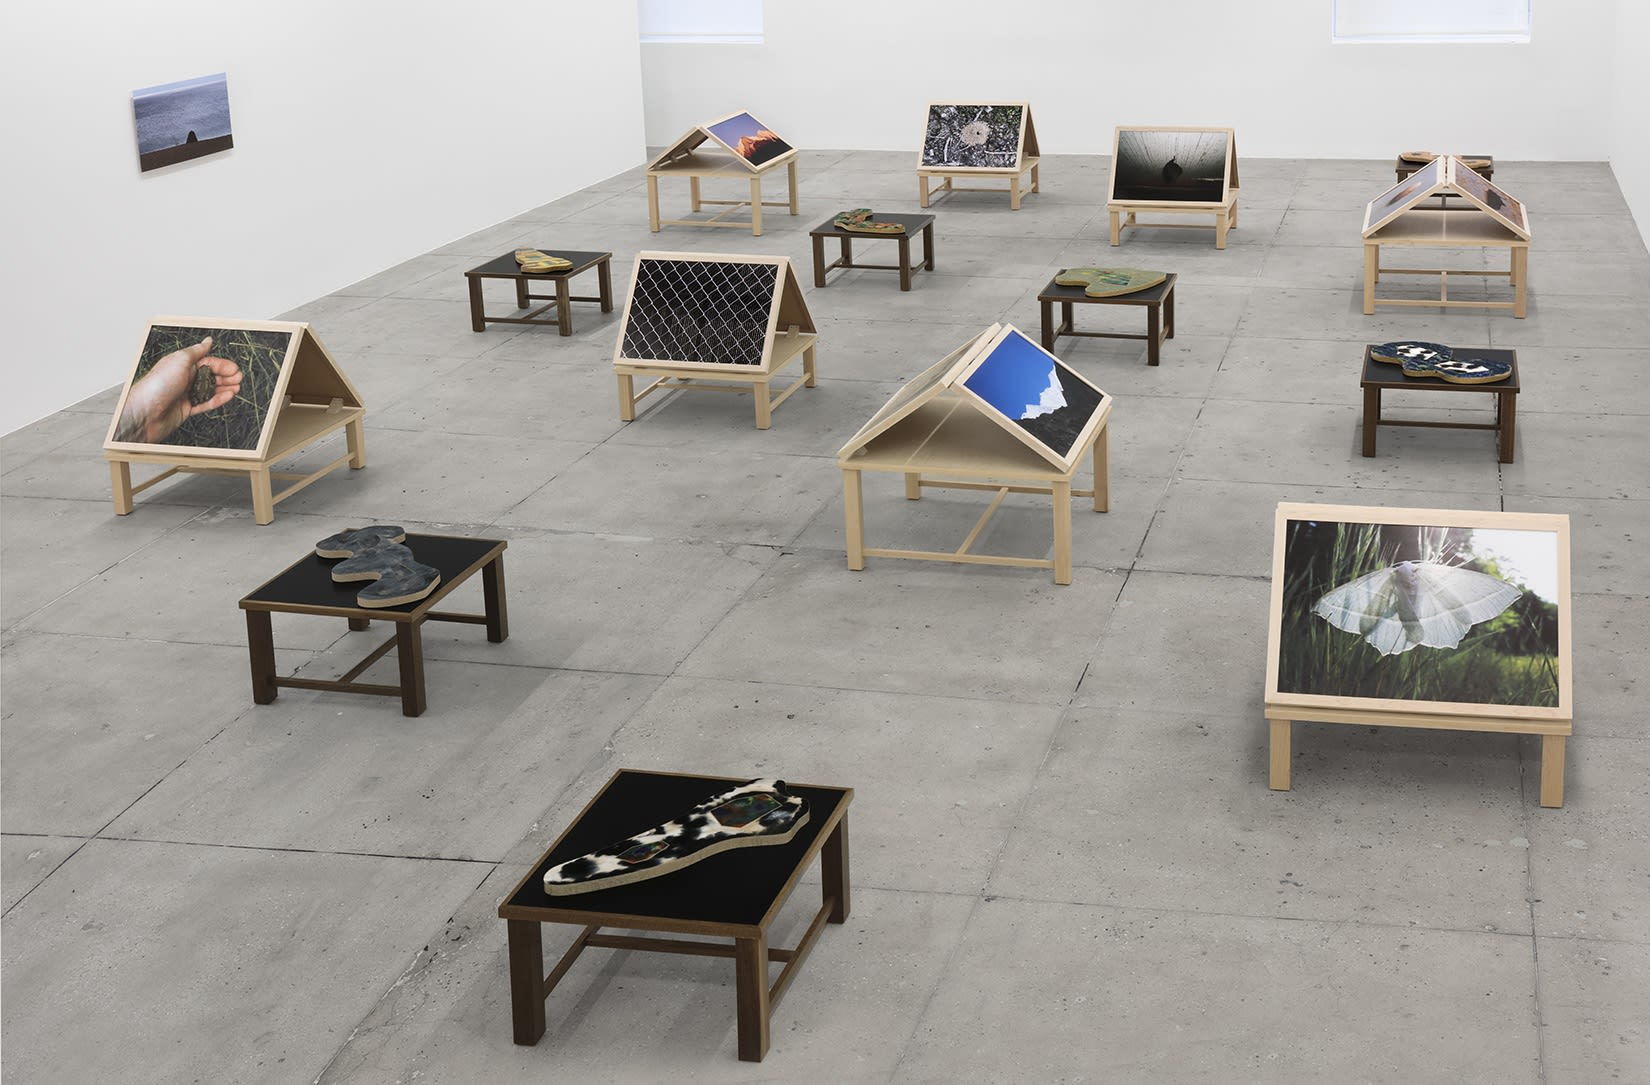 15 wooden platforms display photographs of nature and flat sculptures on a concrete floor. A beach photograph hangs on a white wall.